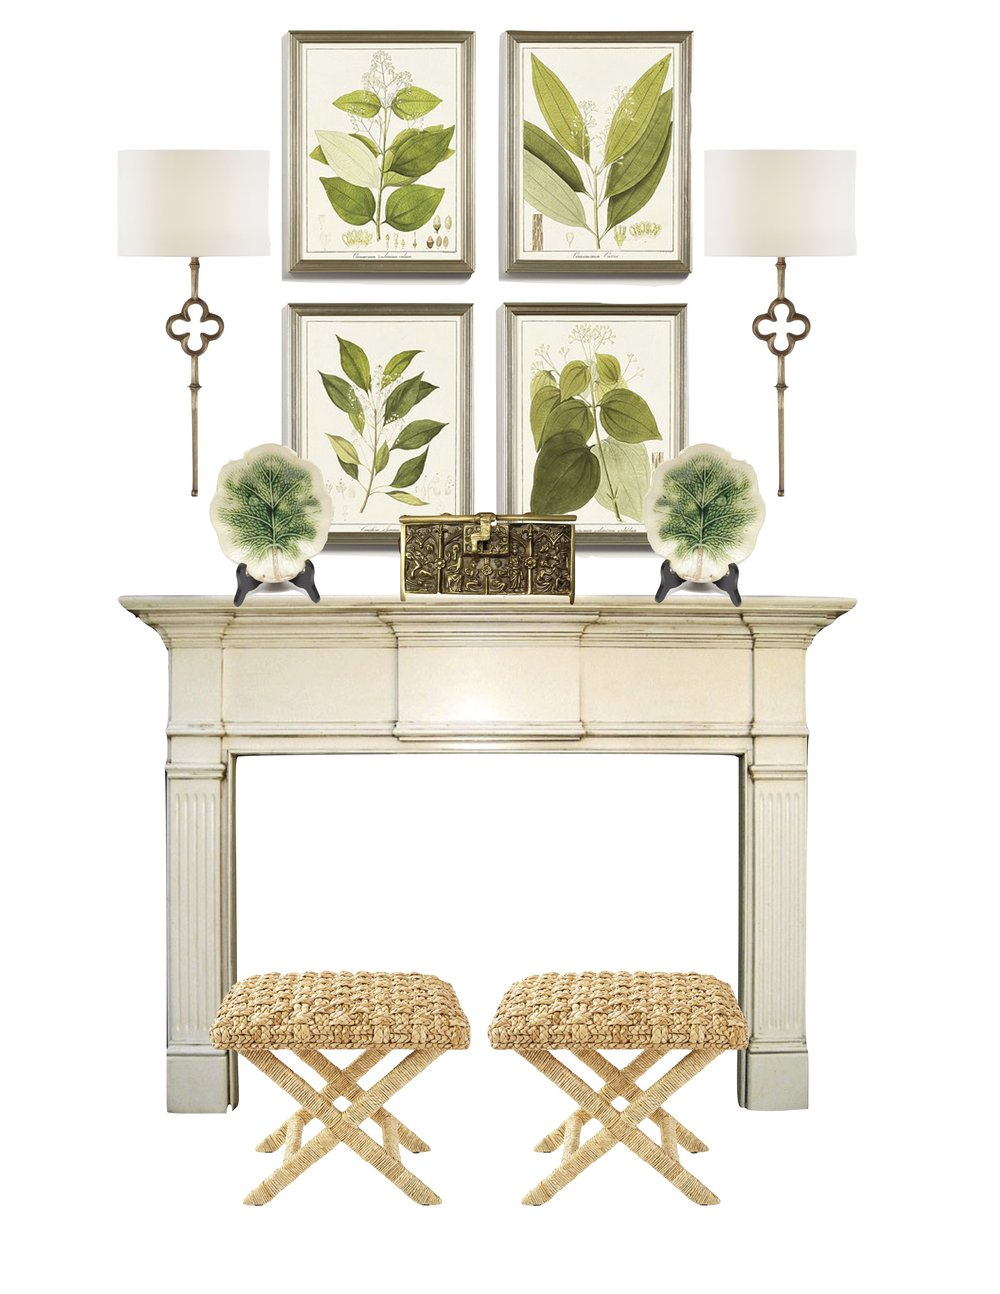 Sconces   |   Botanical Prints   |   Majolica Plates   |   Seagrass Stools